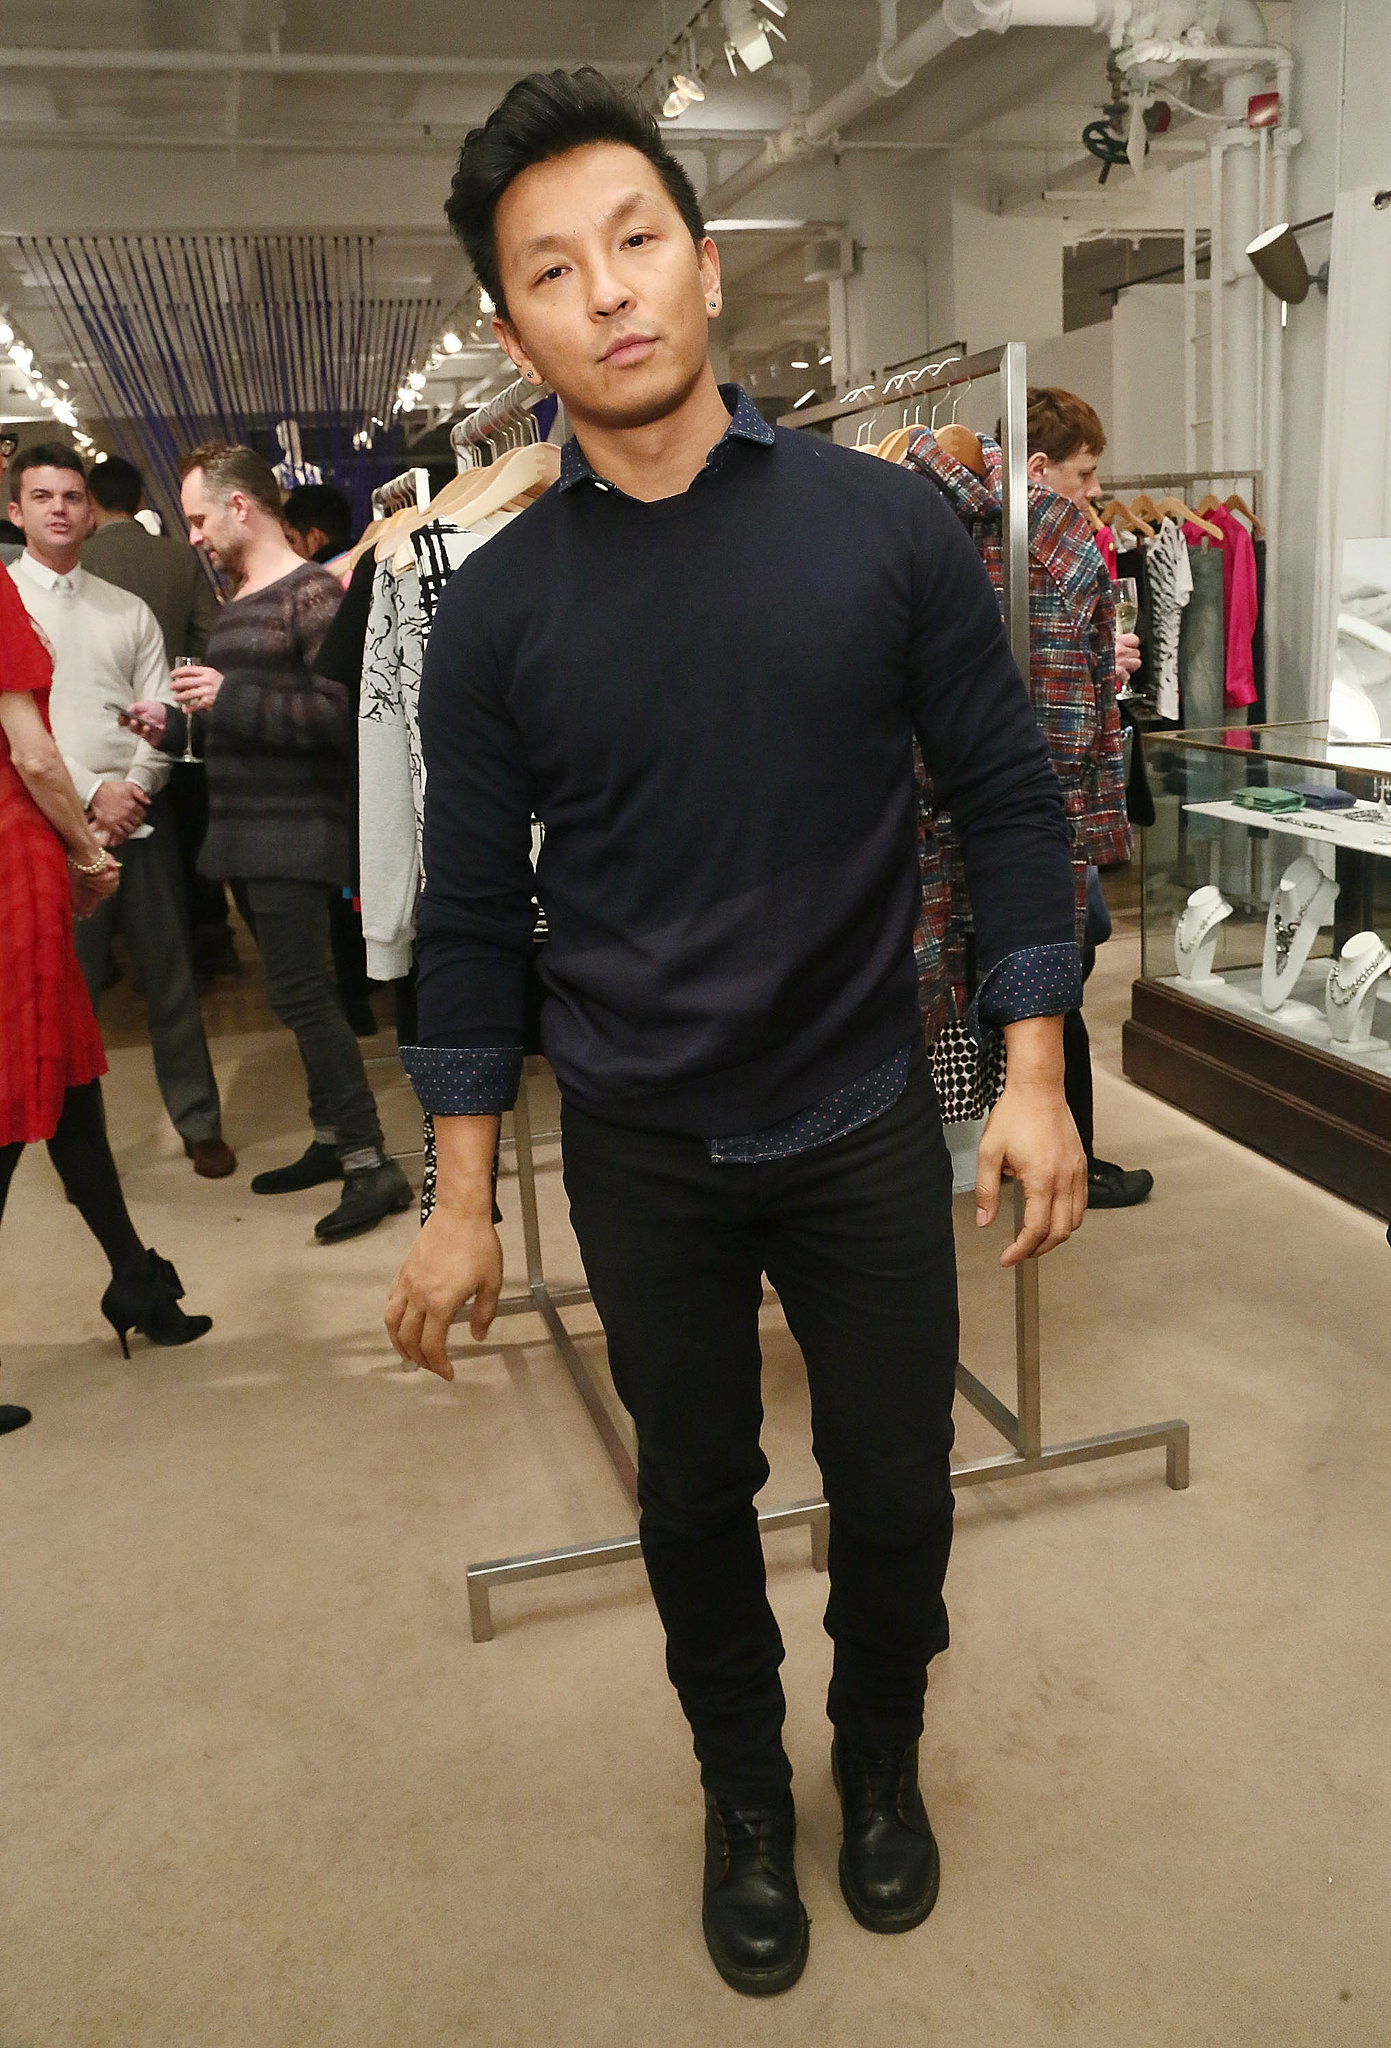 Prabal Gurung at the VIP kickoff for Jeffrey Fashion Cares.